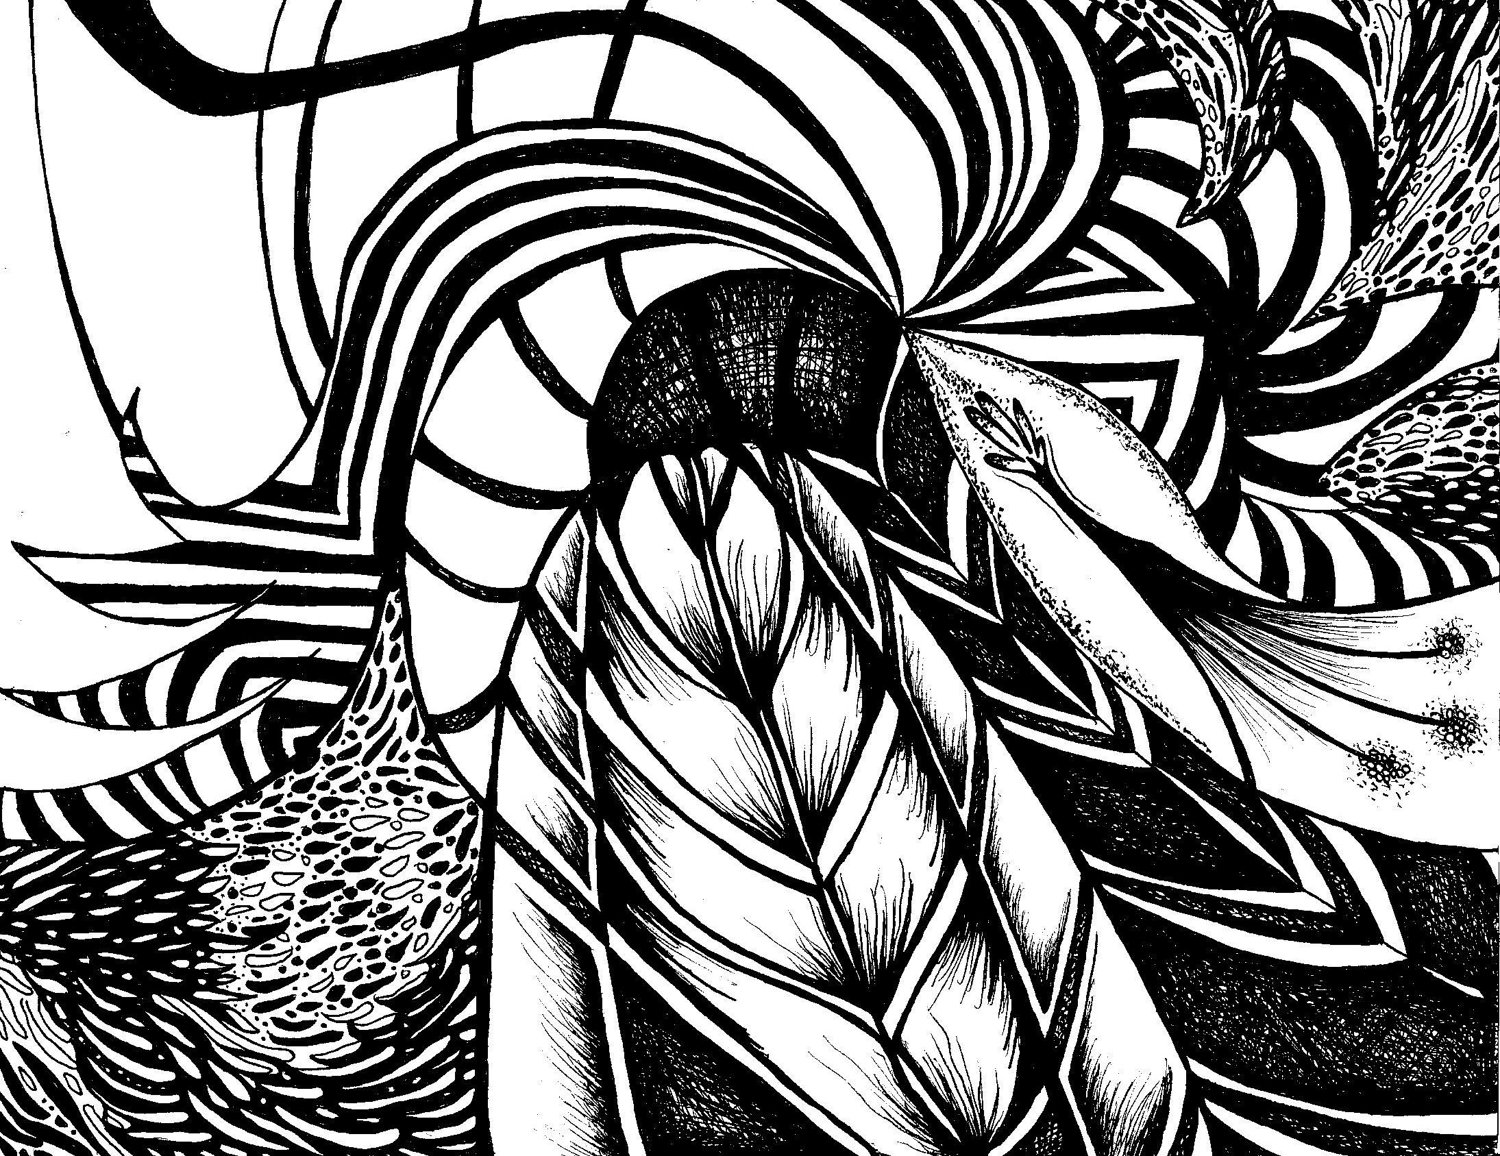 Abstract Line Drawing Artists : Black and white abstract drawings wide wallpaper